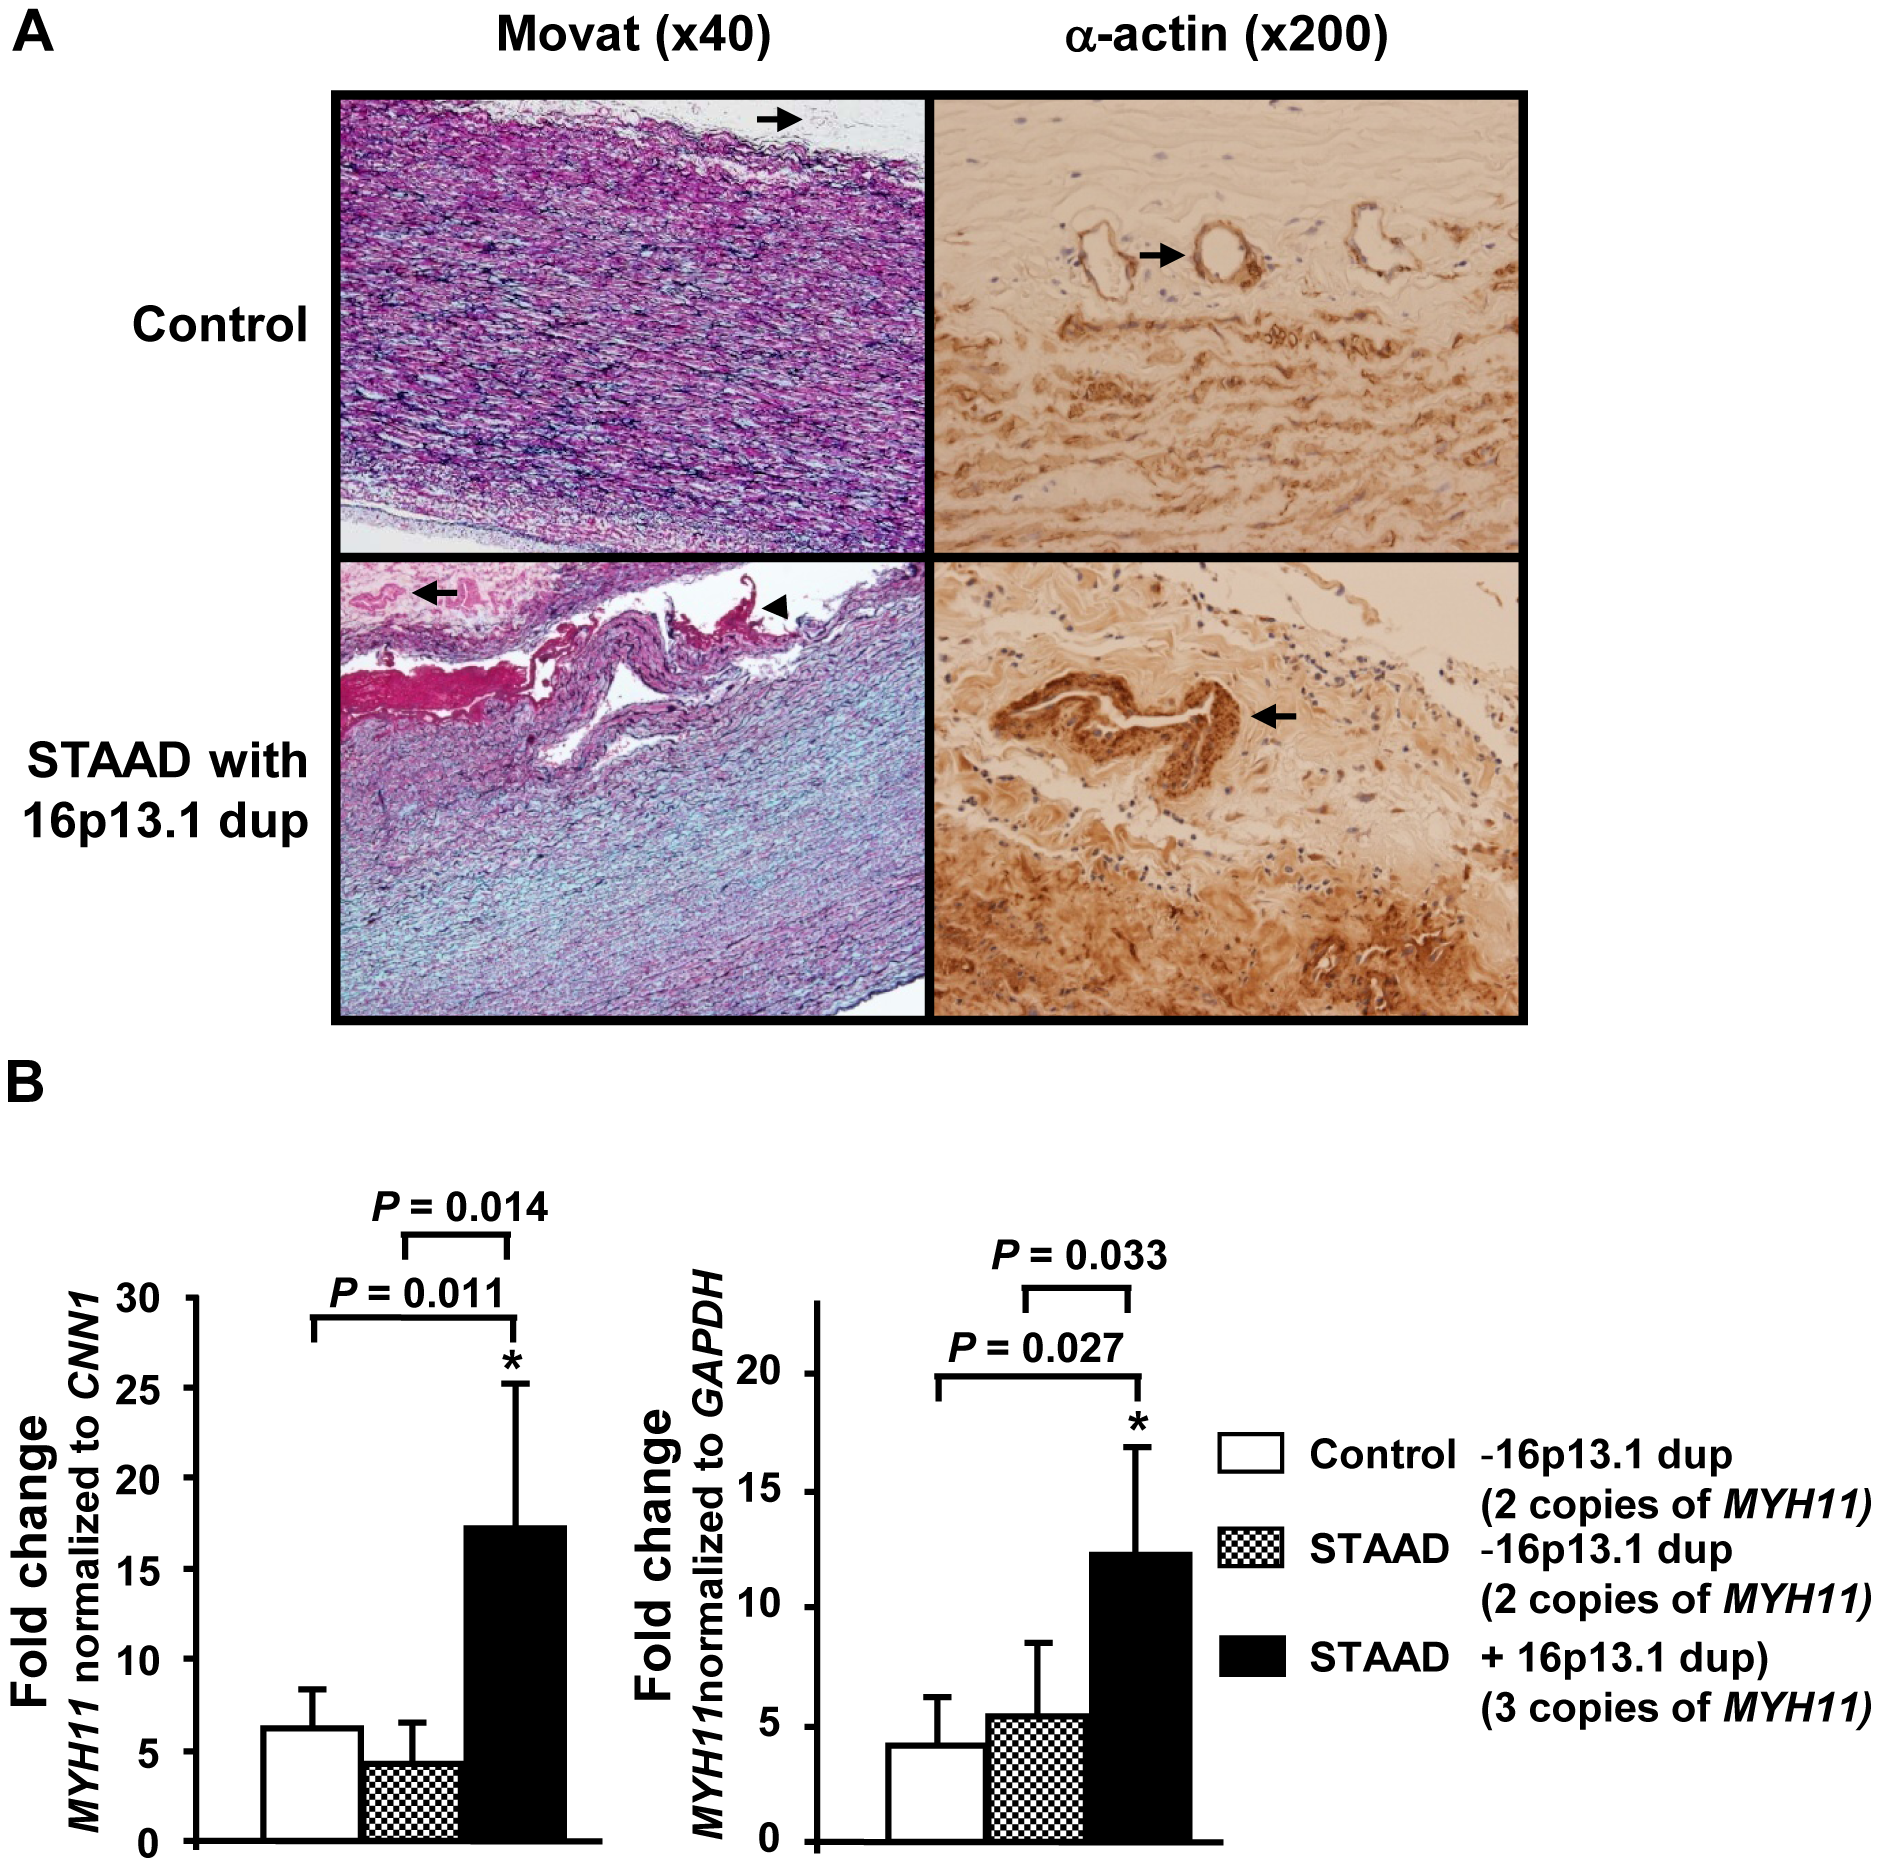 Pathological abnormalities and <i>MYH11</i> expression levels in aortic tissue associated with 16p13.1 duplication in patients with staad.